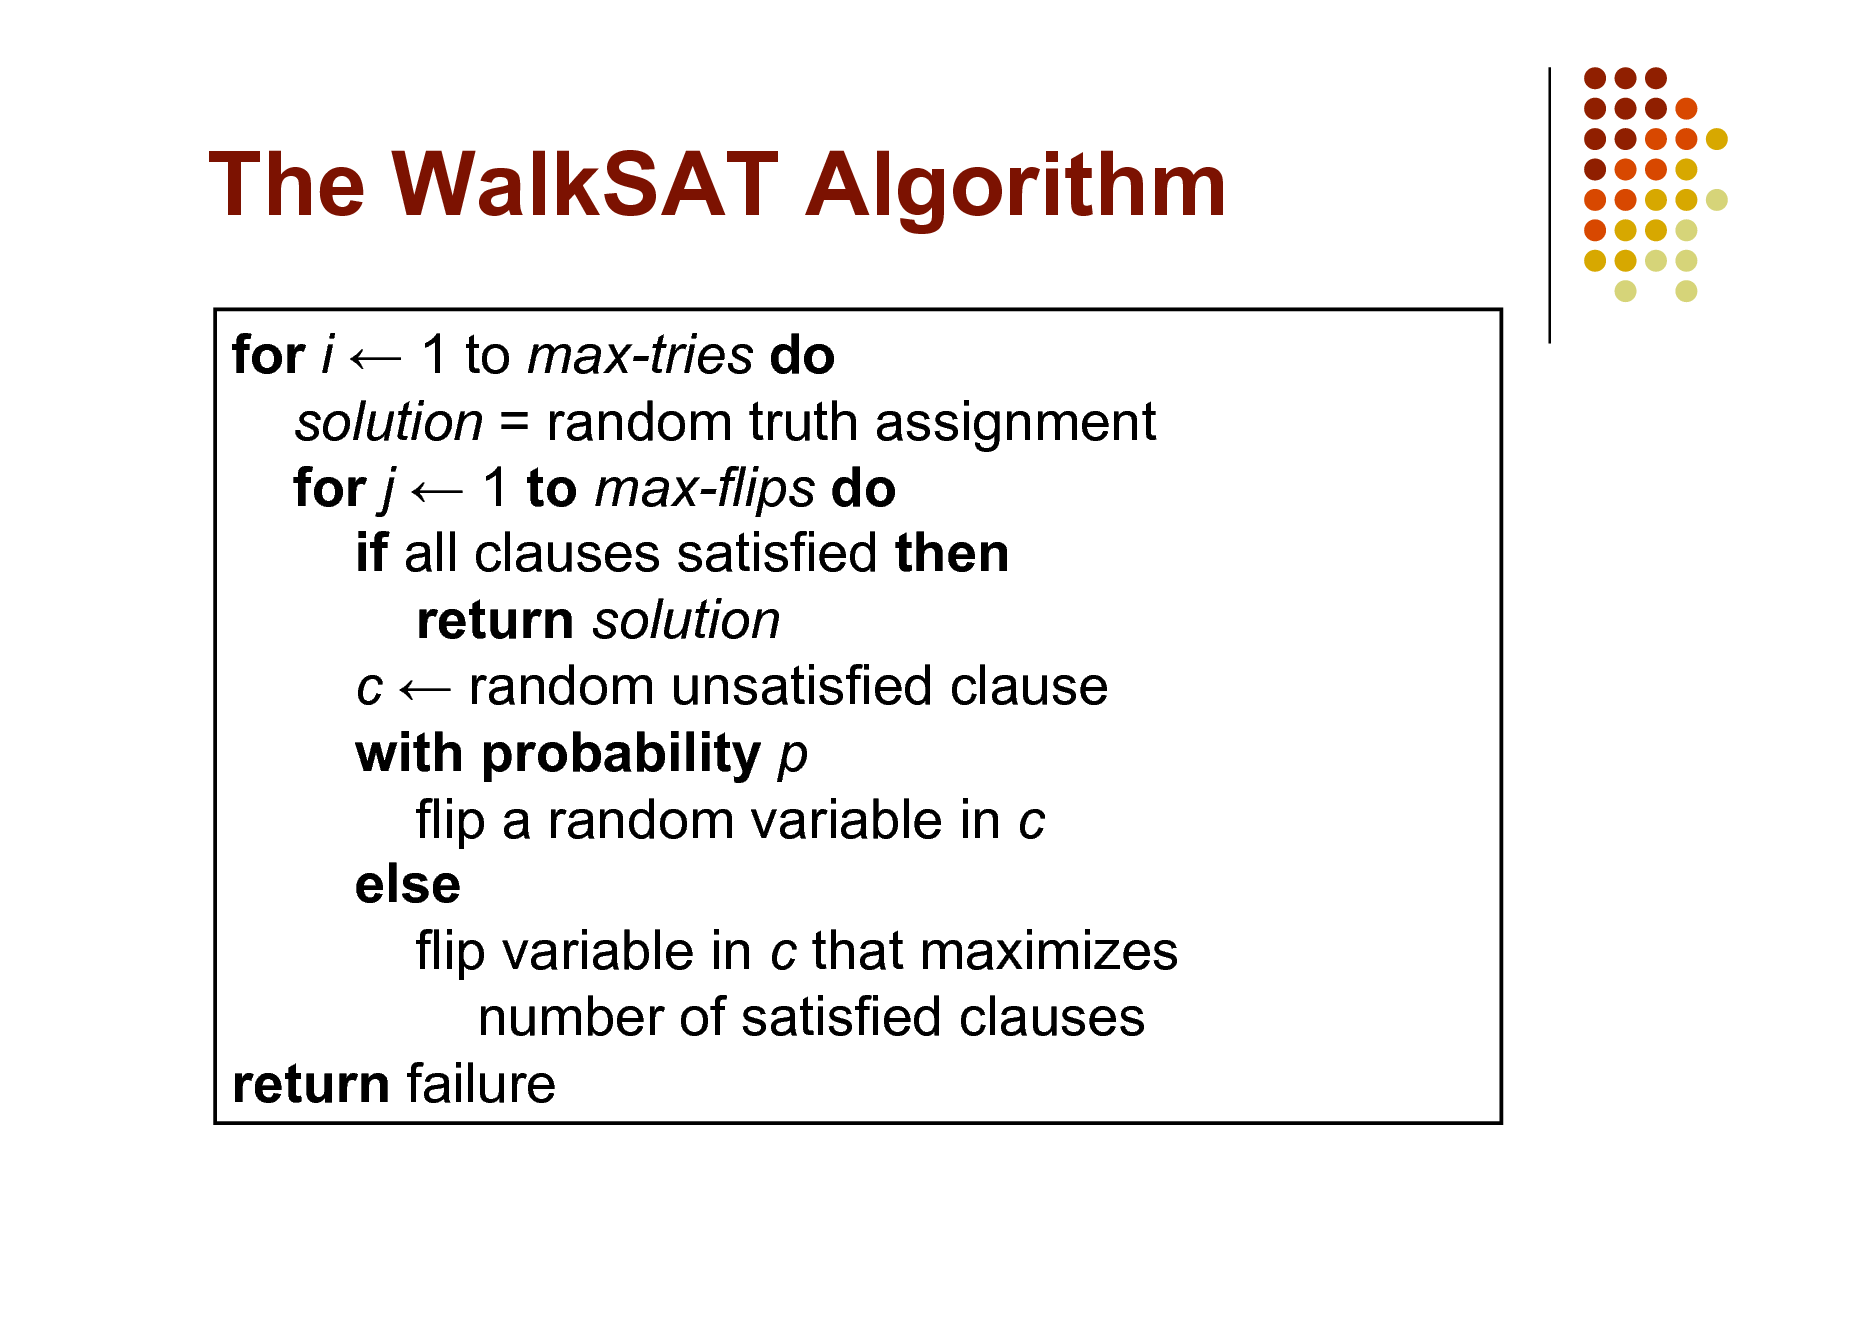 Slide: The WalkSAT Algorithm for i  1 to max-tries do solution = random truth assignment for j  1 to max-flips do if all clauses satisfied then return solution c  random unsatisfied clause with probability p flip a random variable in c else flip variable in c that maximizes number of satisfied clauses return failure